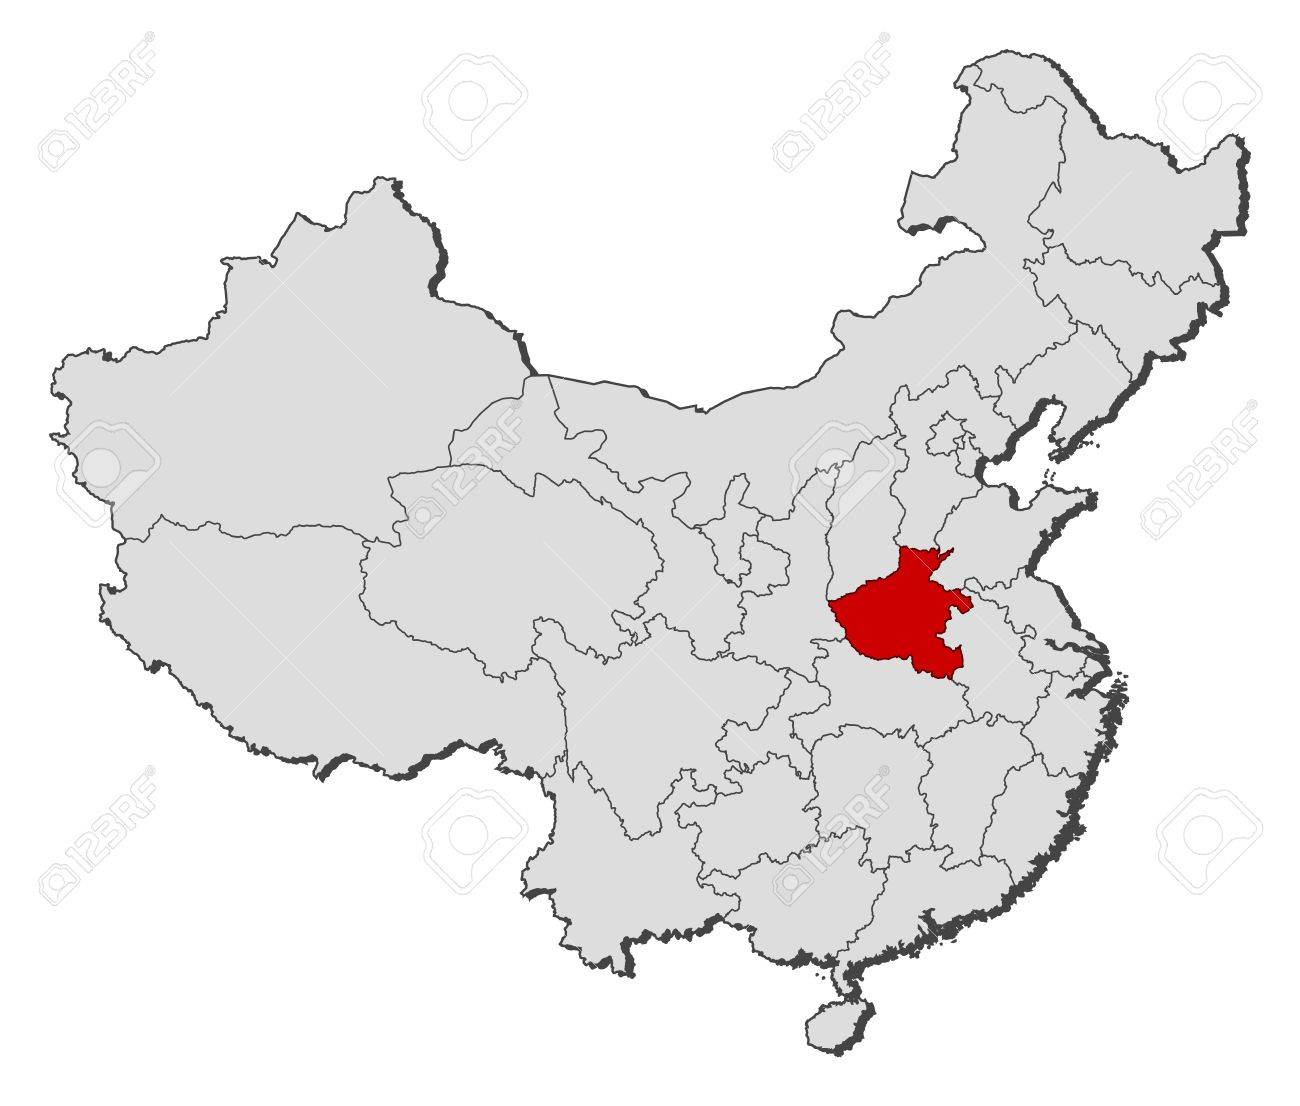 Political Map Of China With The Several Provinces Where Henan